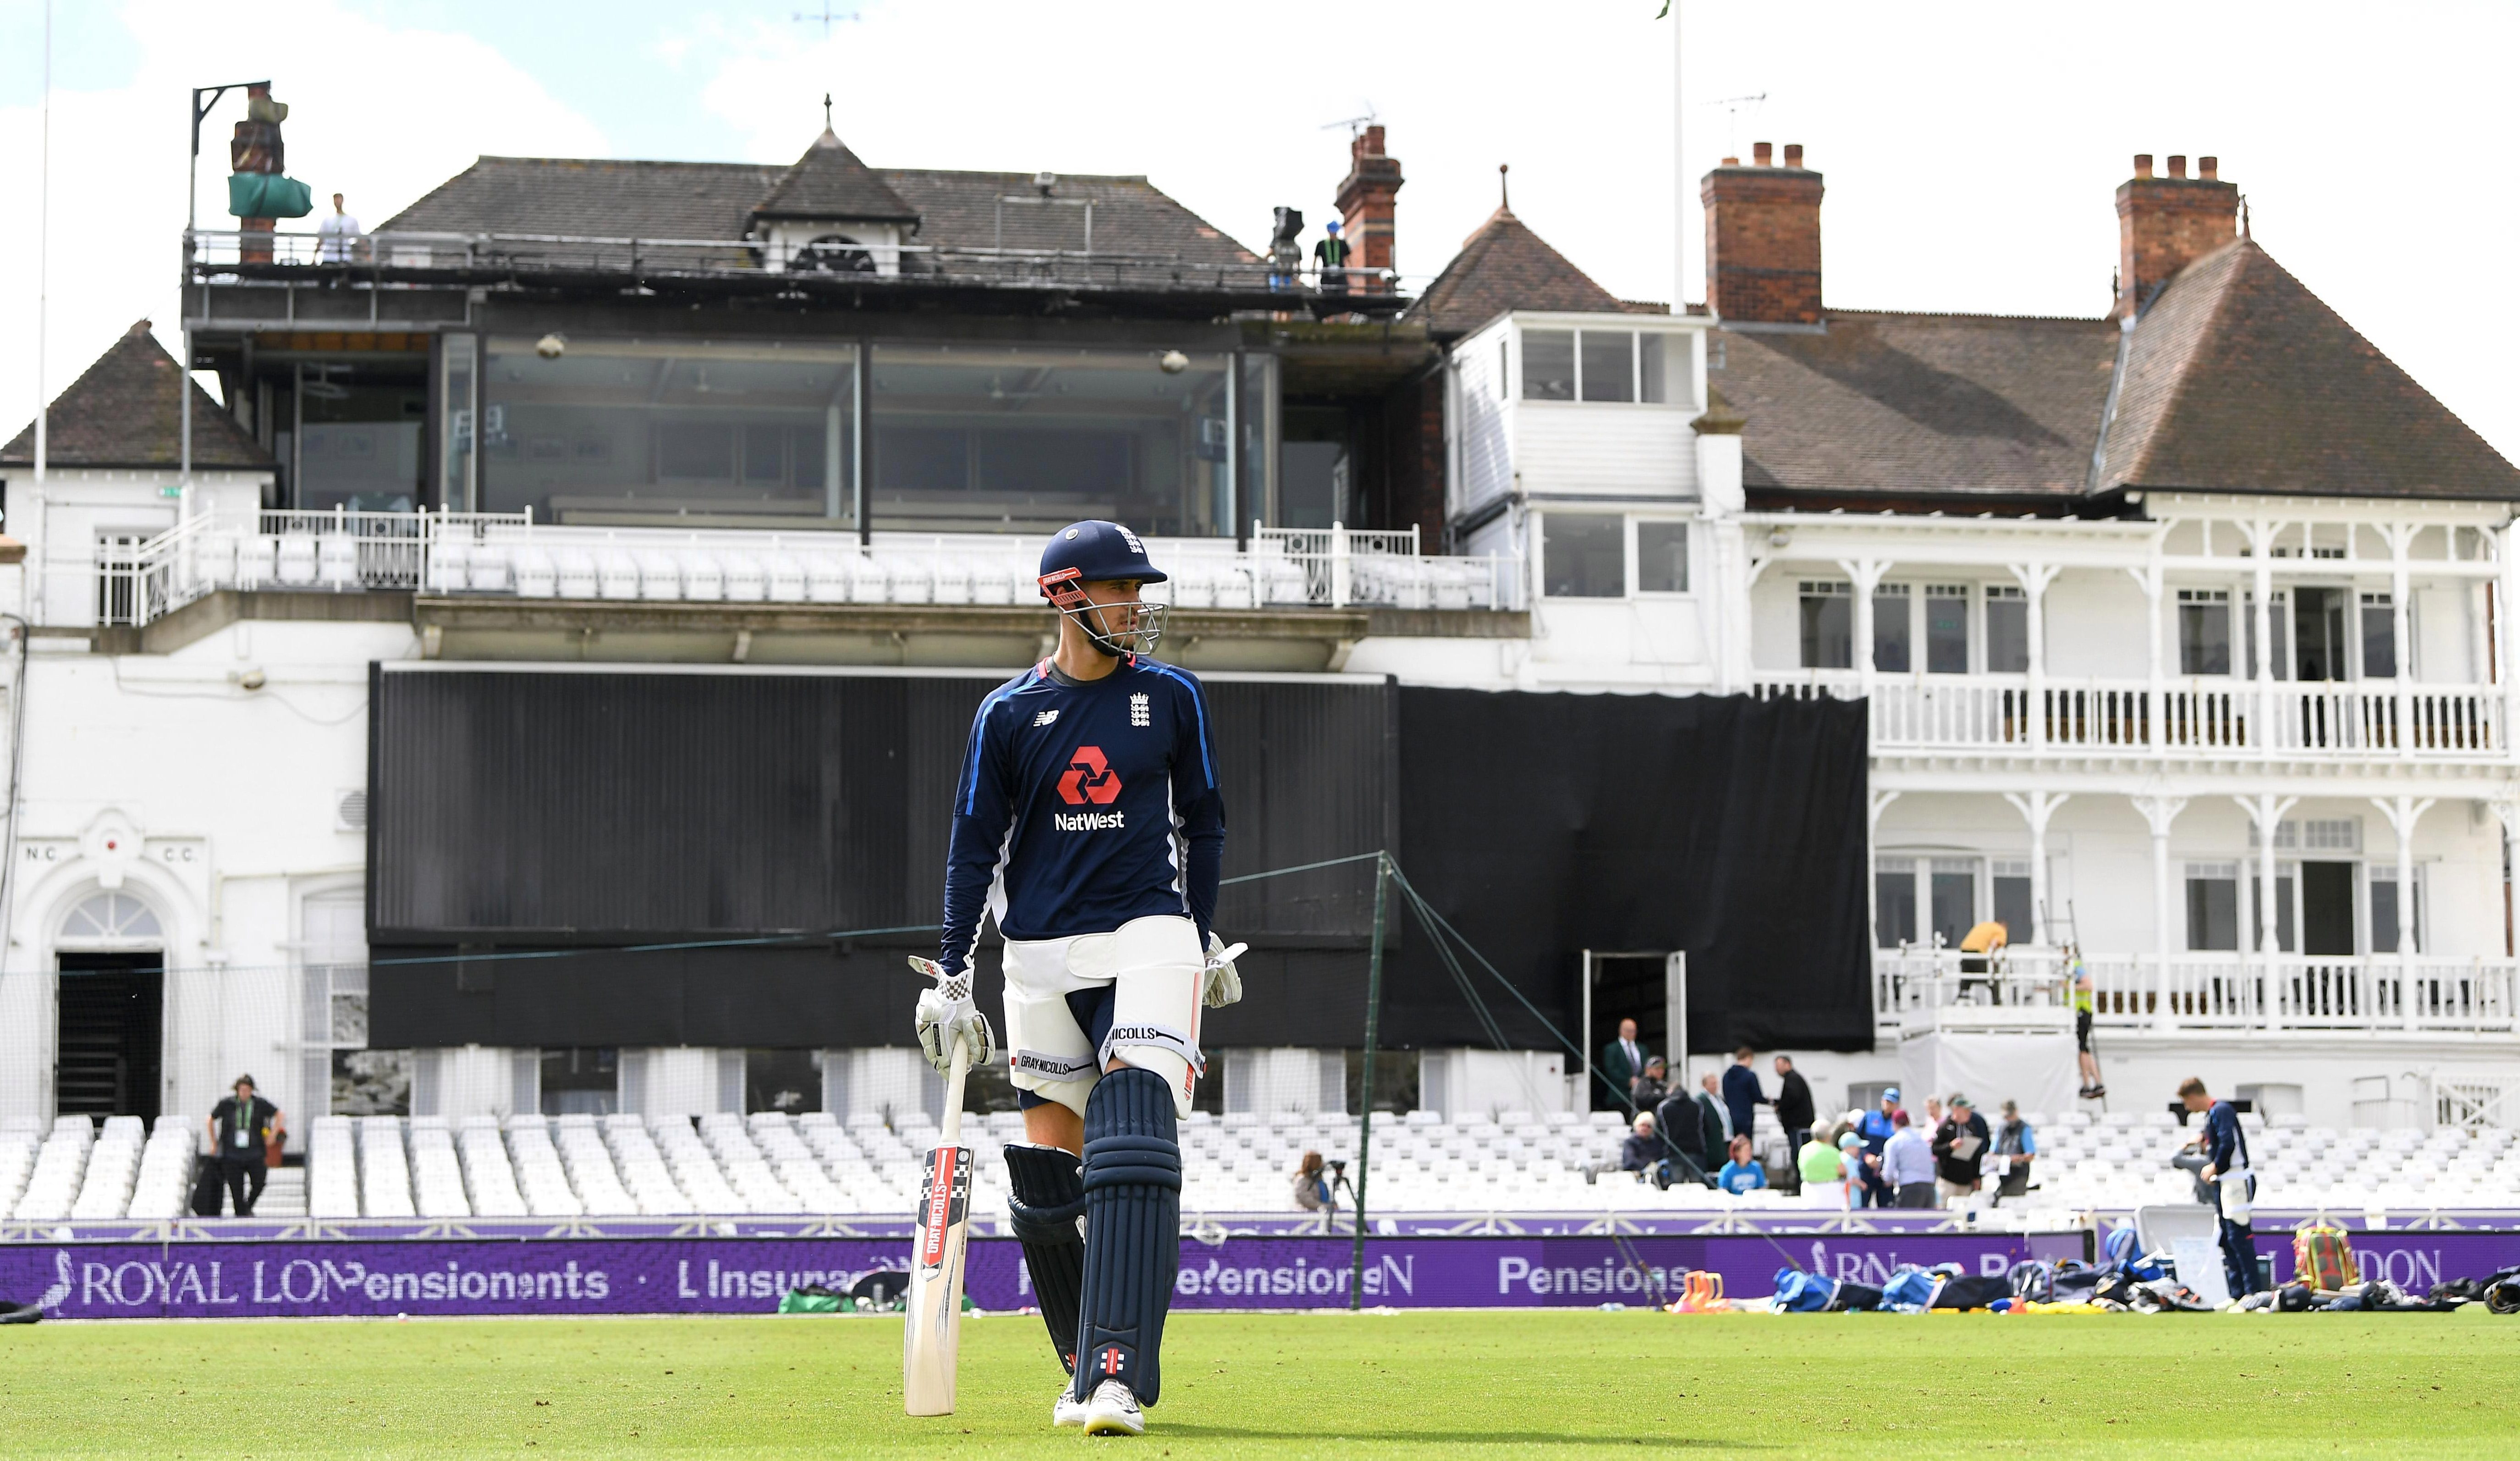 Alex Hales will play at his home ground in the third ODI